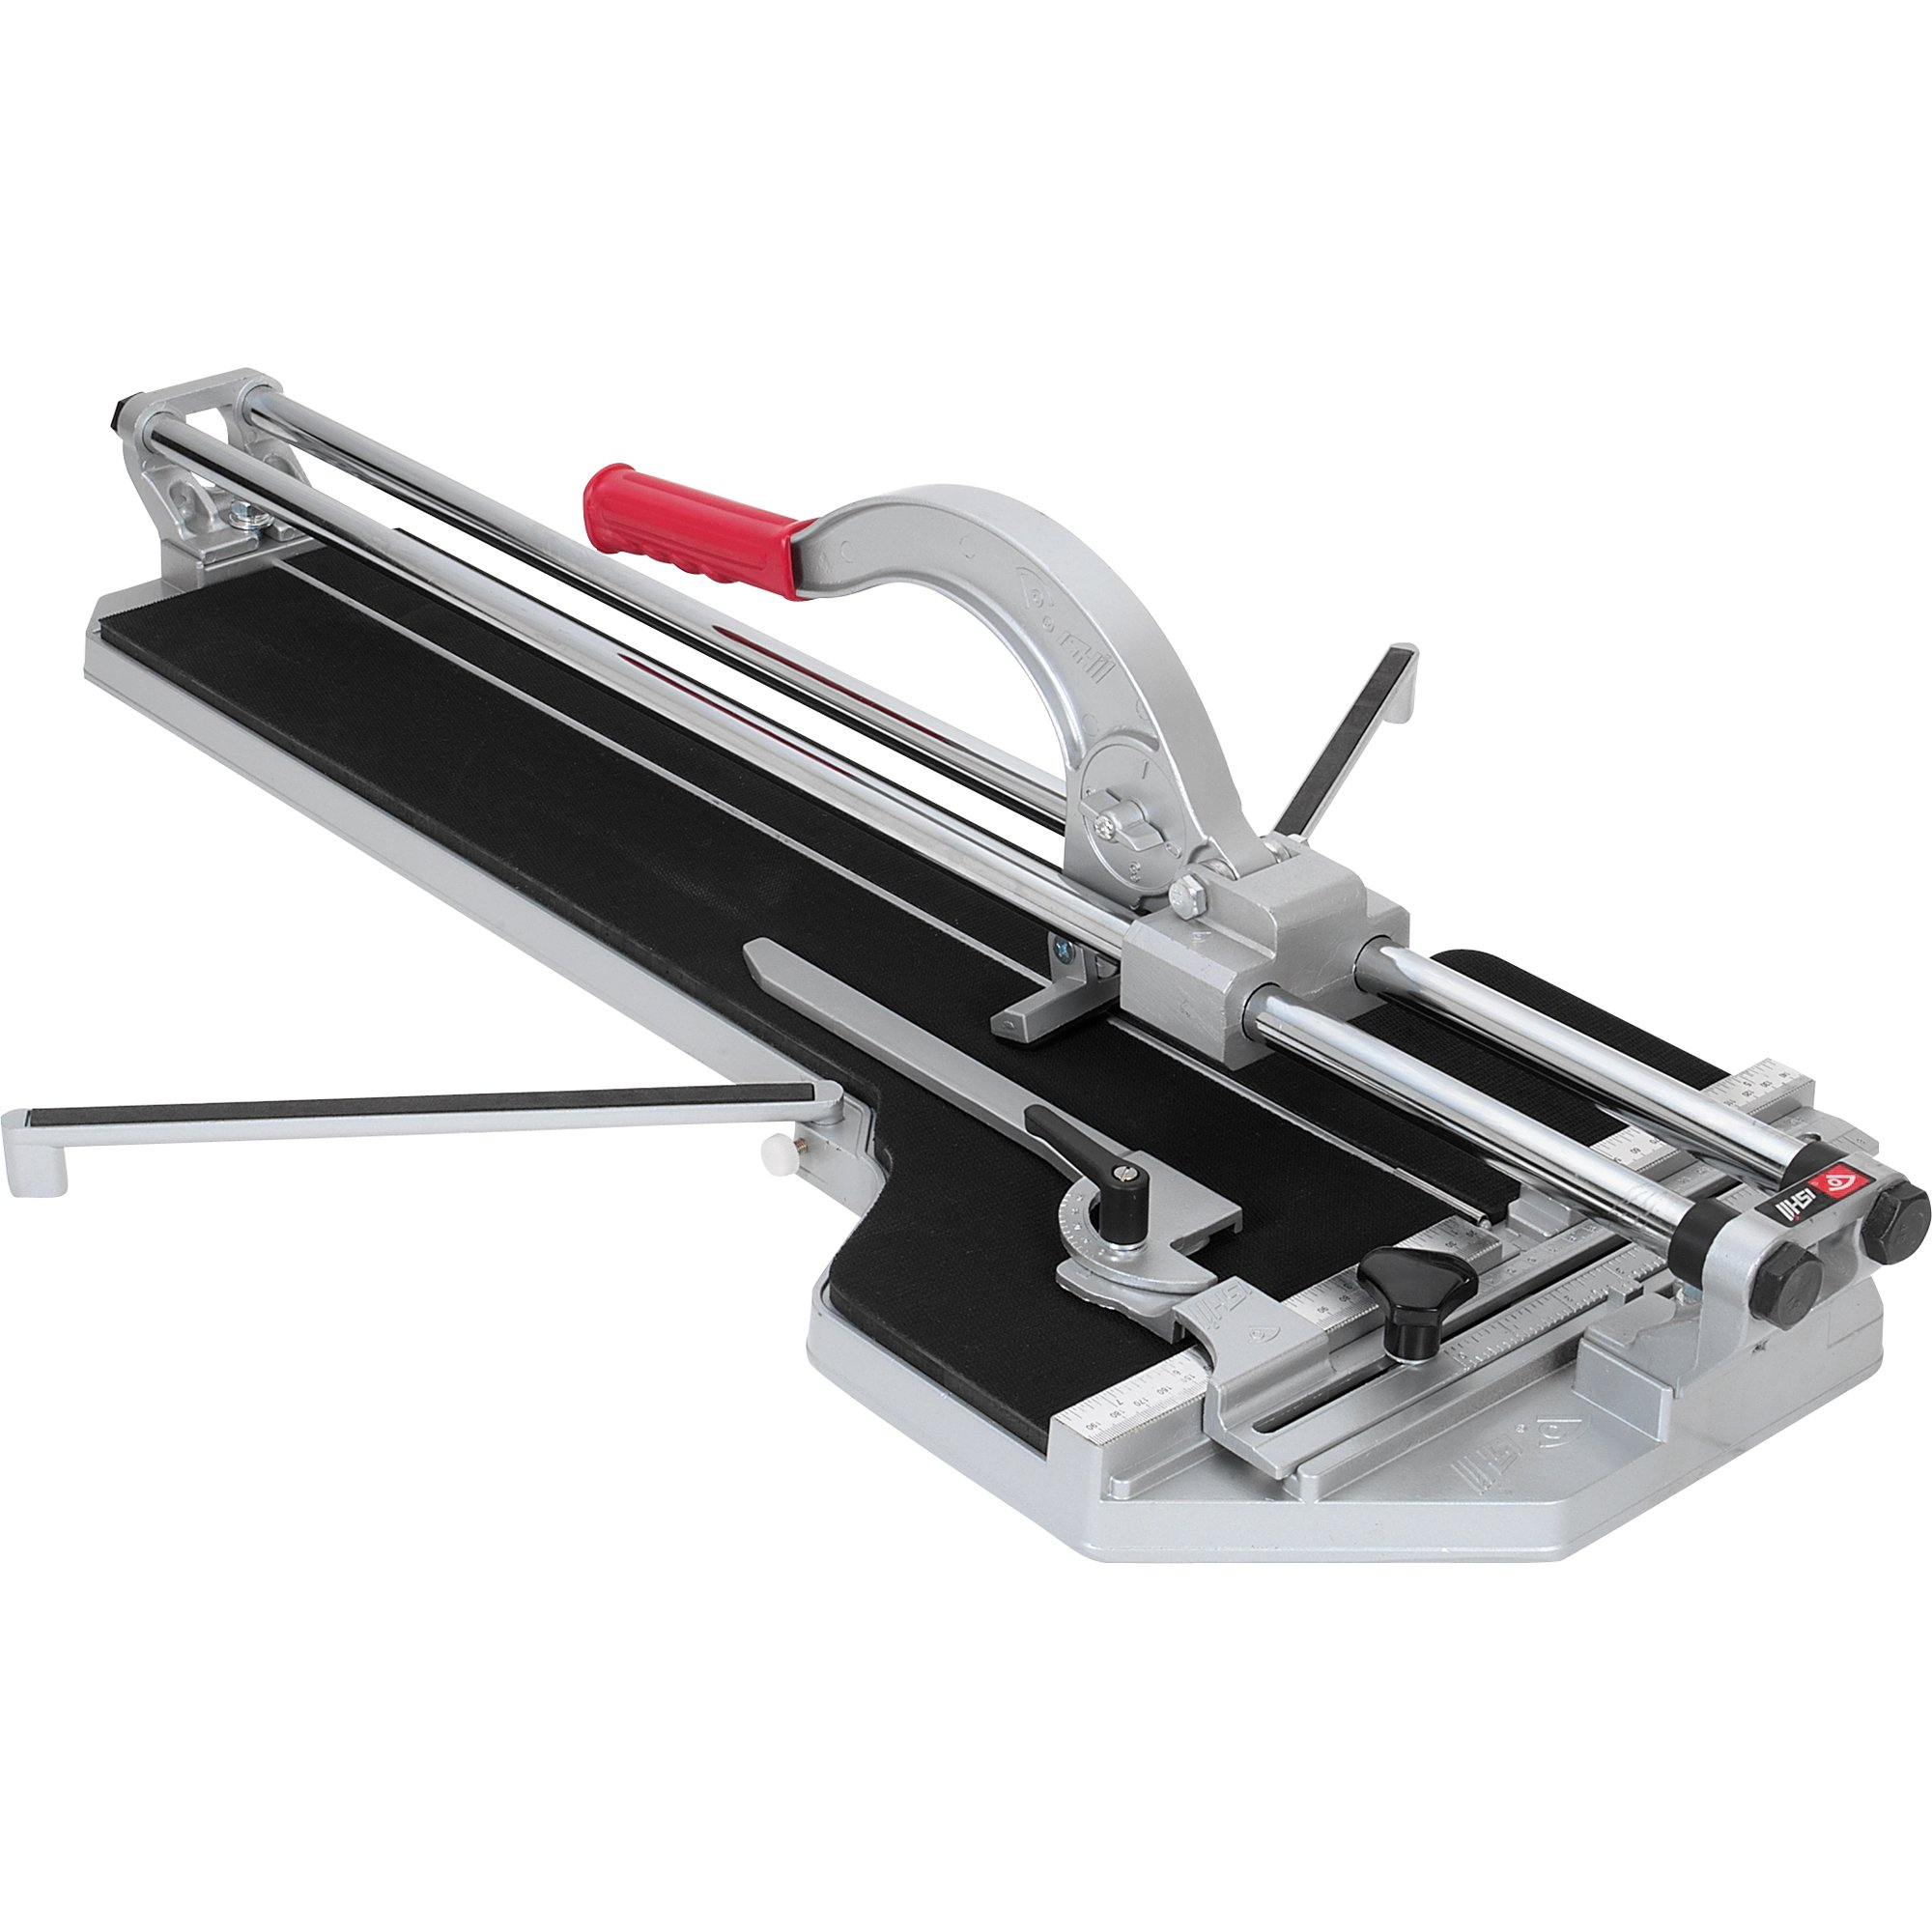 Brutus 10800 27-Inch  Rip and 20-Inch  Diagonal Professional Porcelain Tile Cutter with 7/8-Inch  Cutting Wheel by Brutus